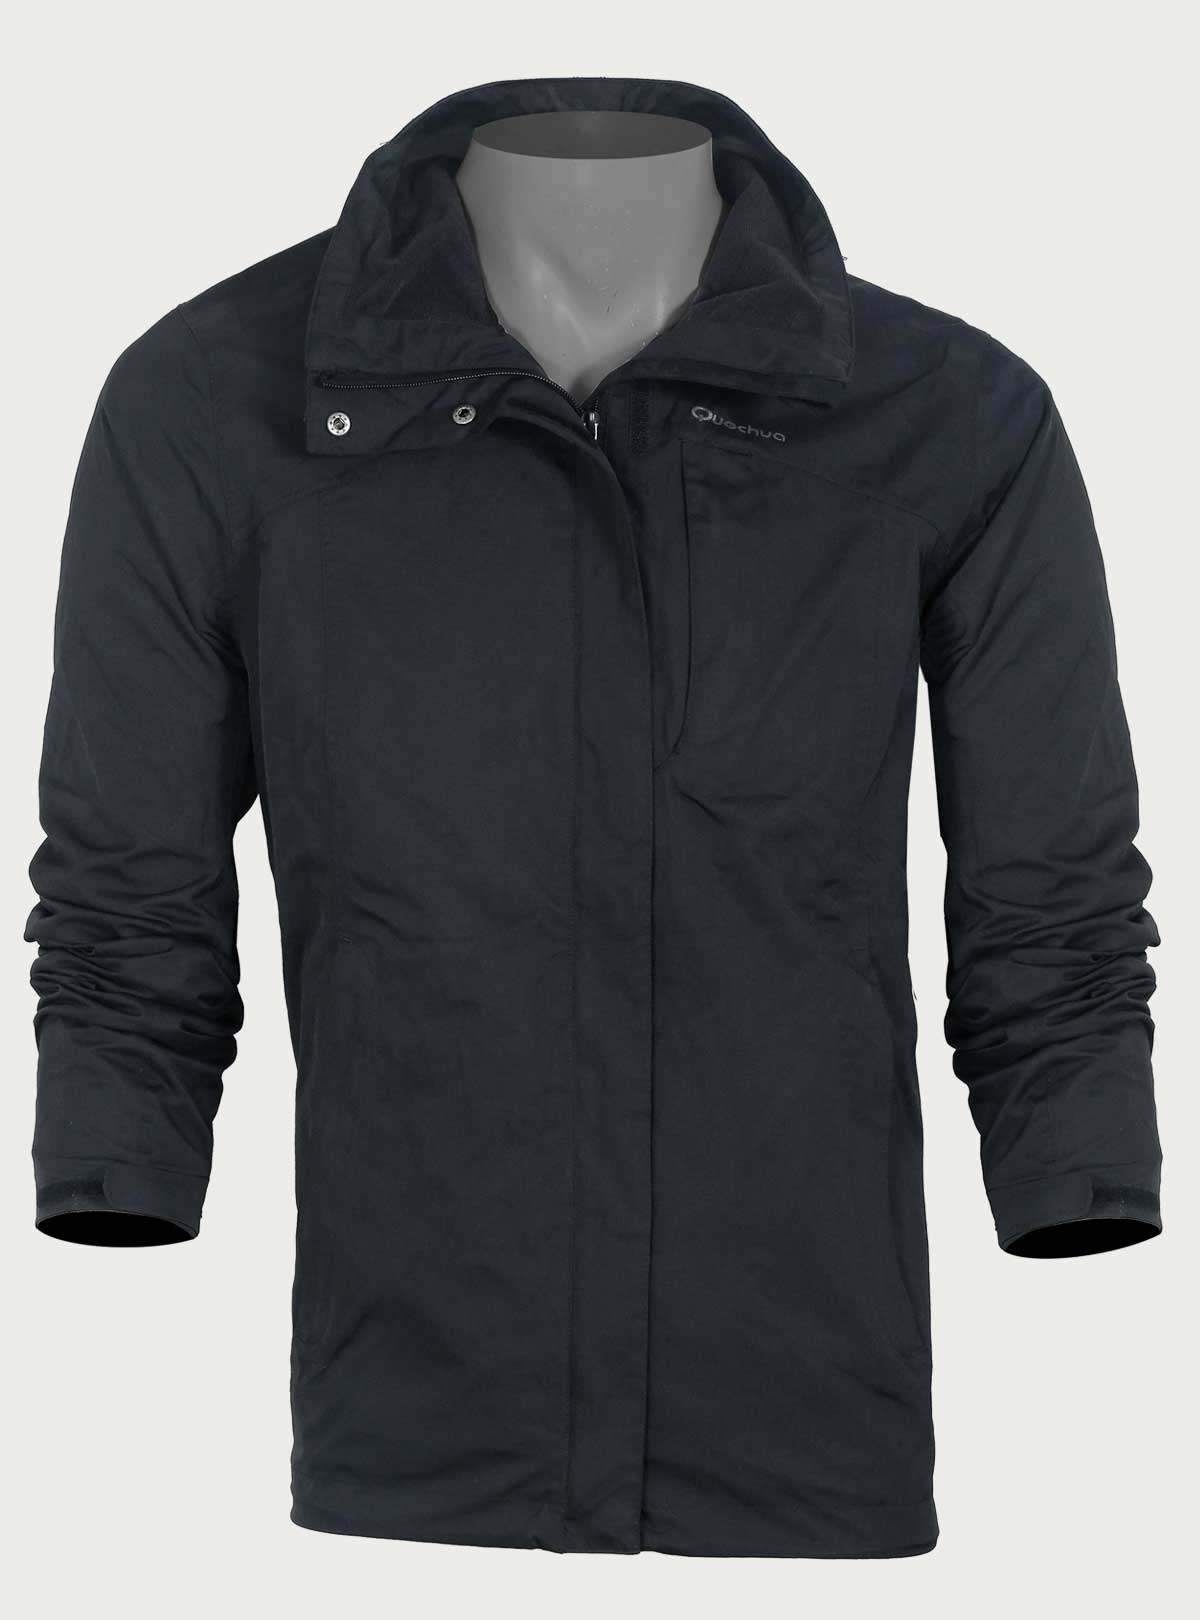 Stylish Winter Jacket By Quechua | Esho.com | Best online shopping ...